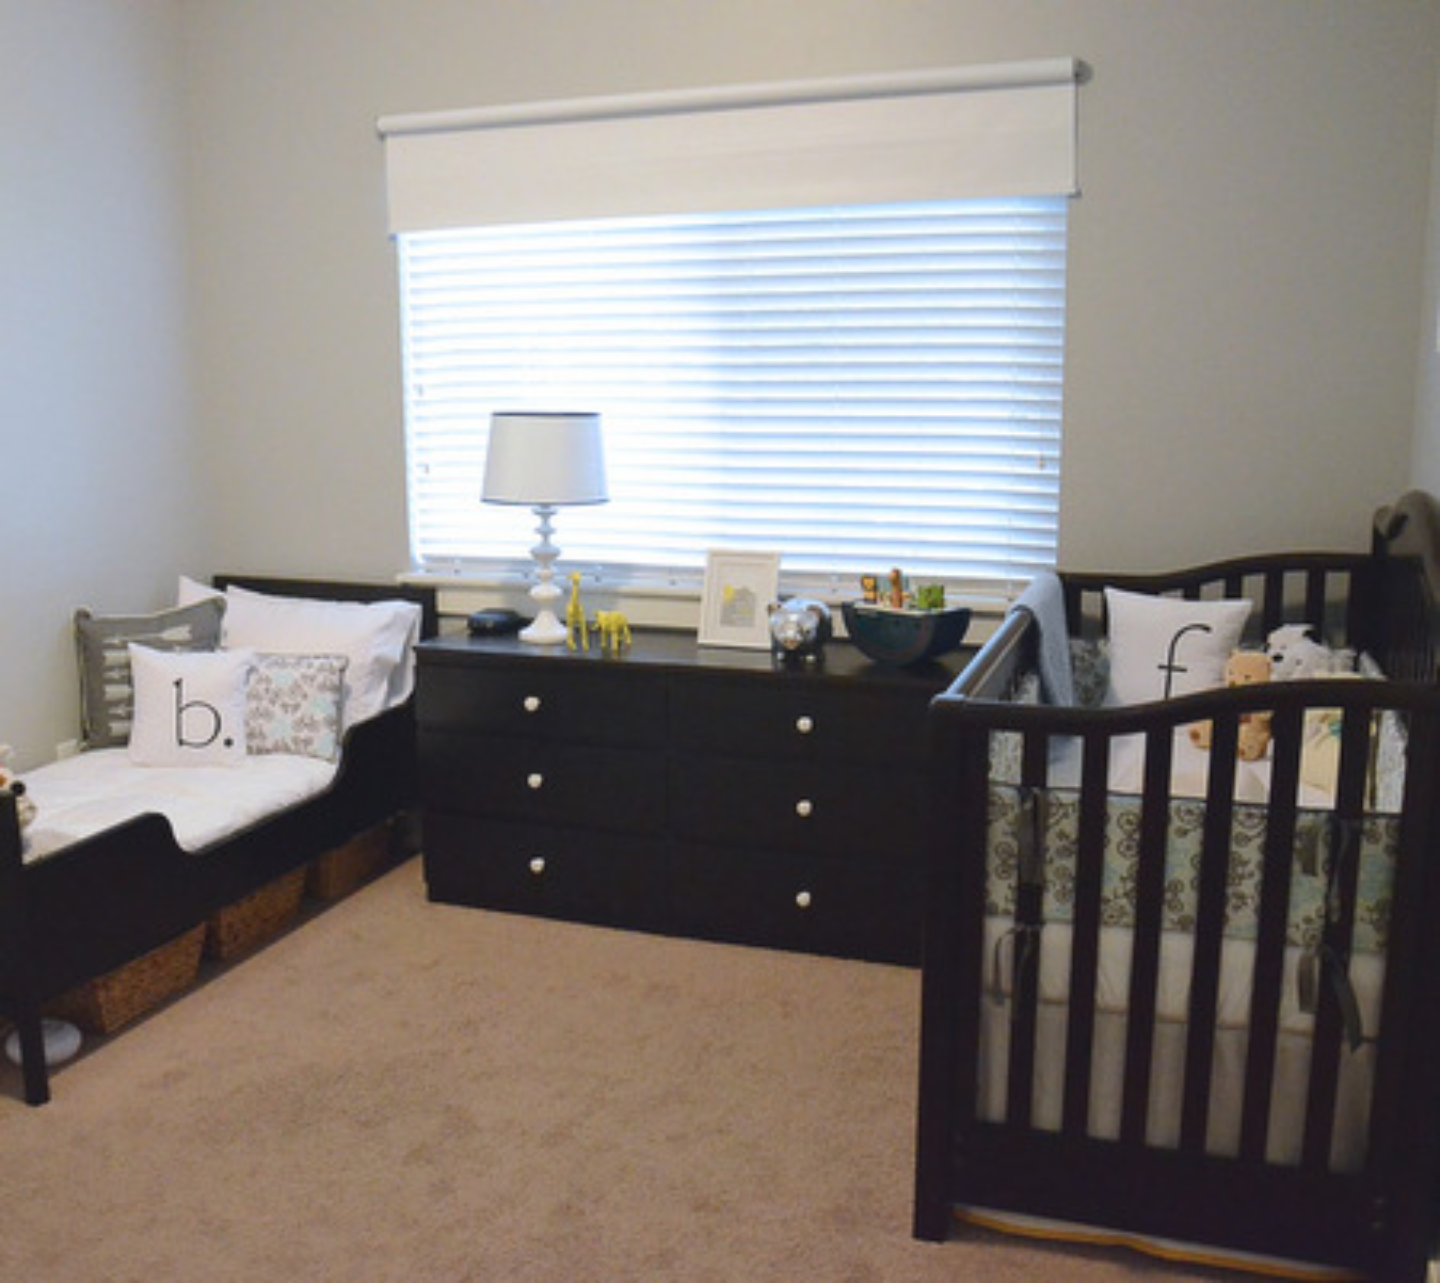 Simple Shared Bedroom For A Toddler And Baby While On A Budget